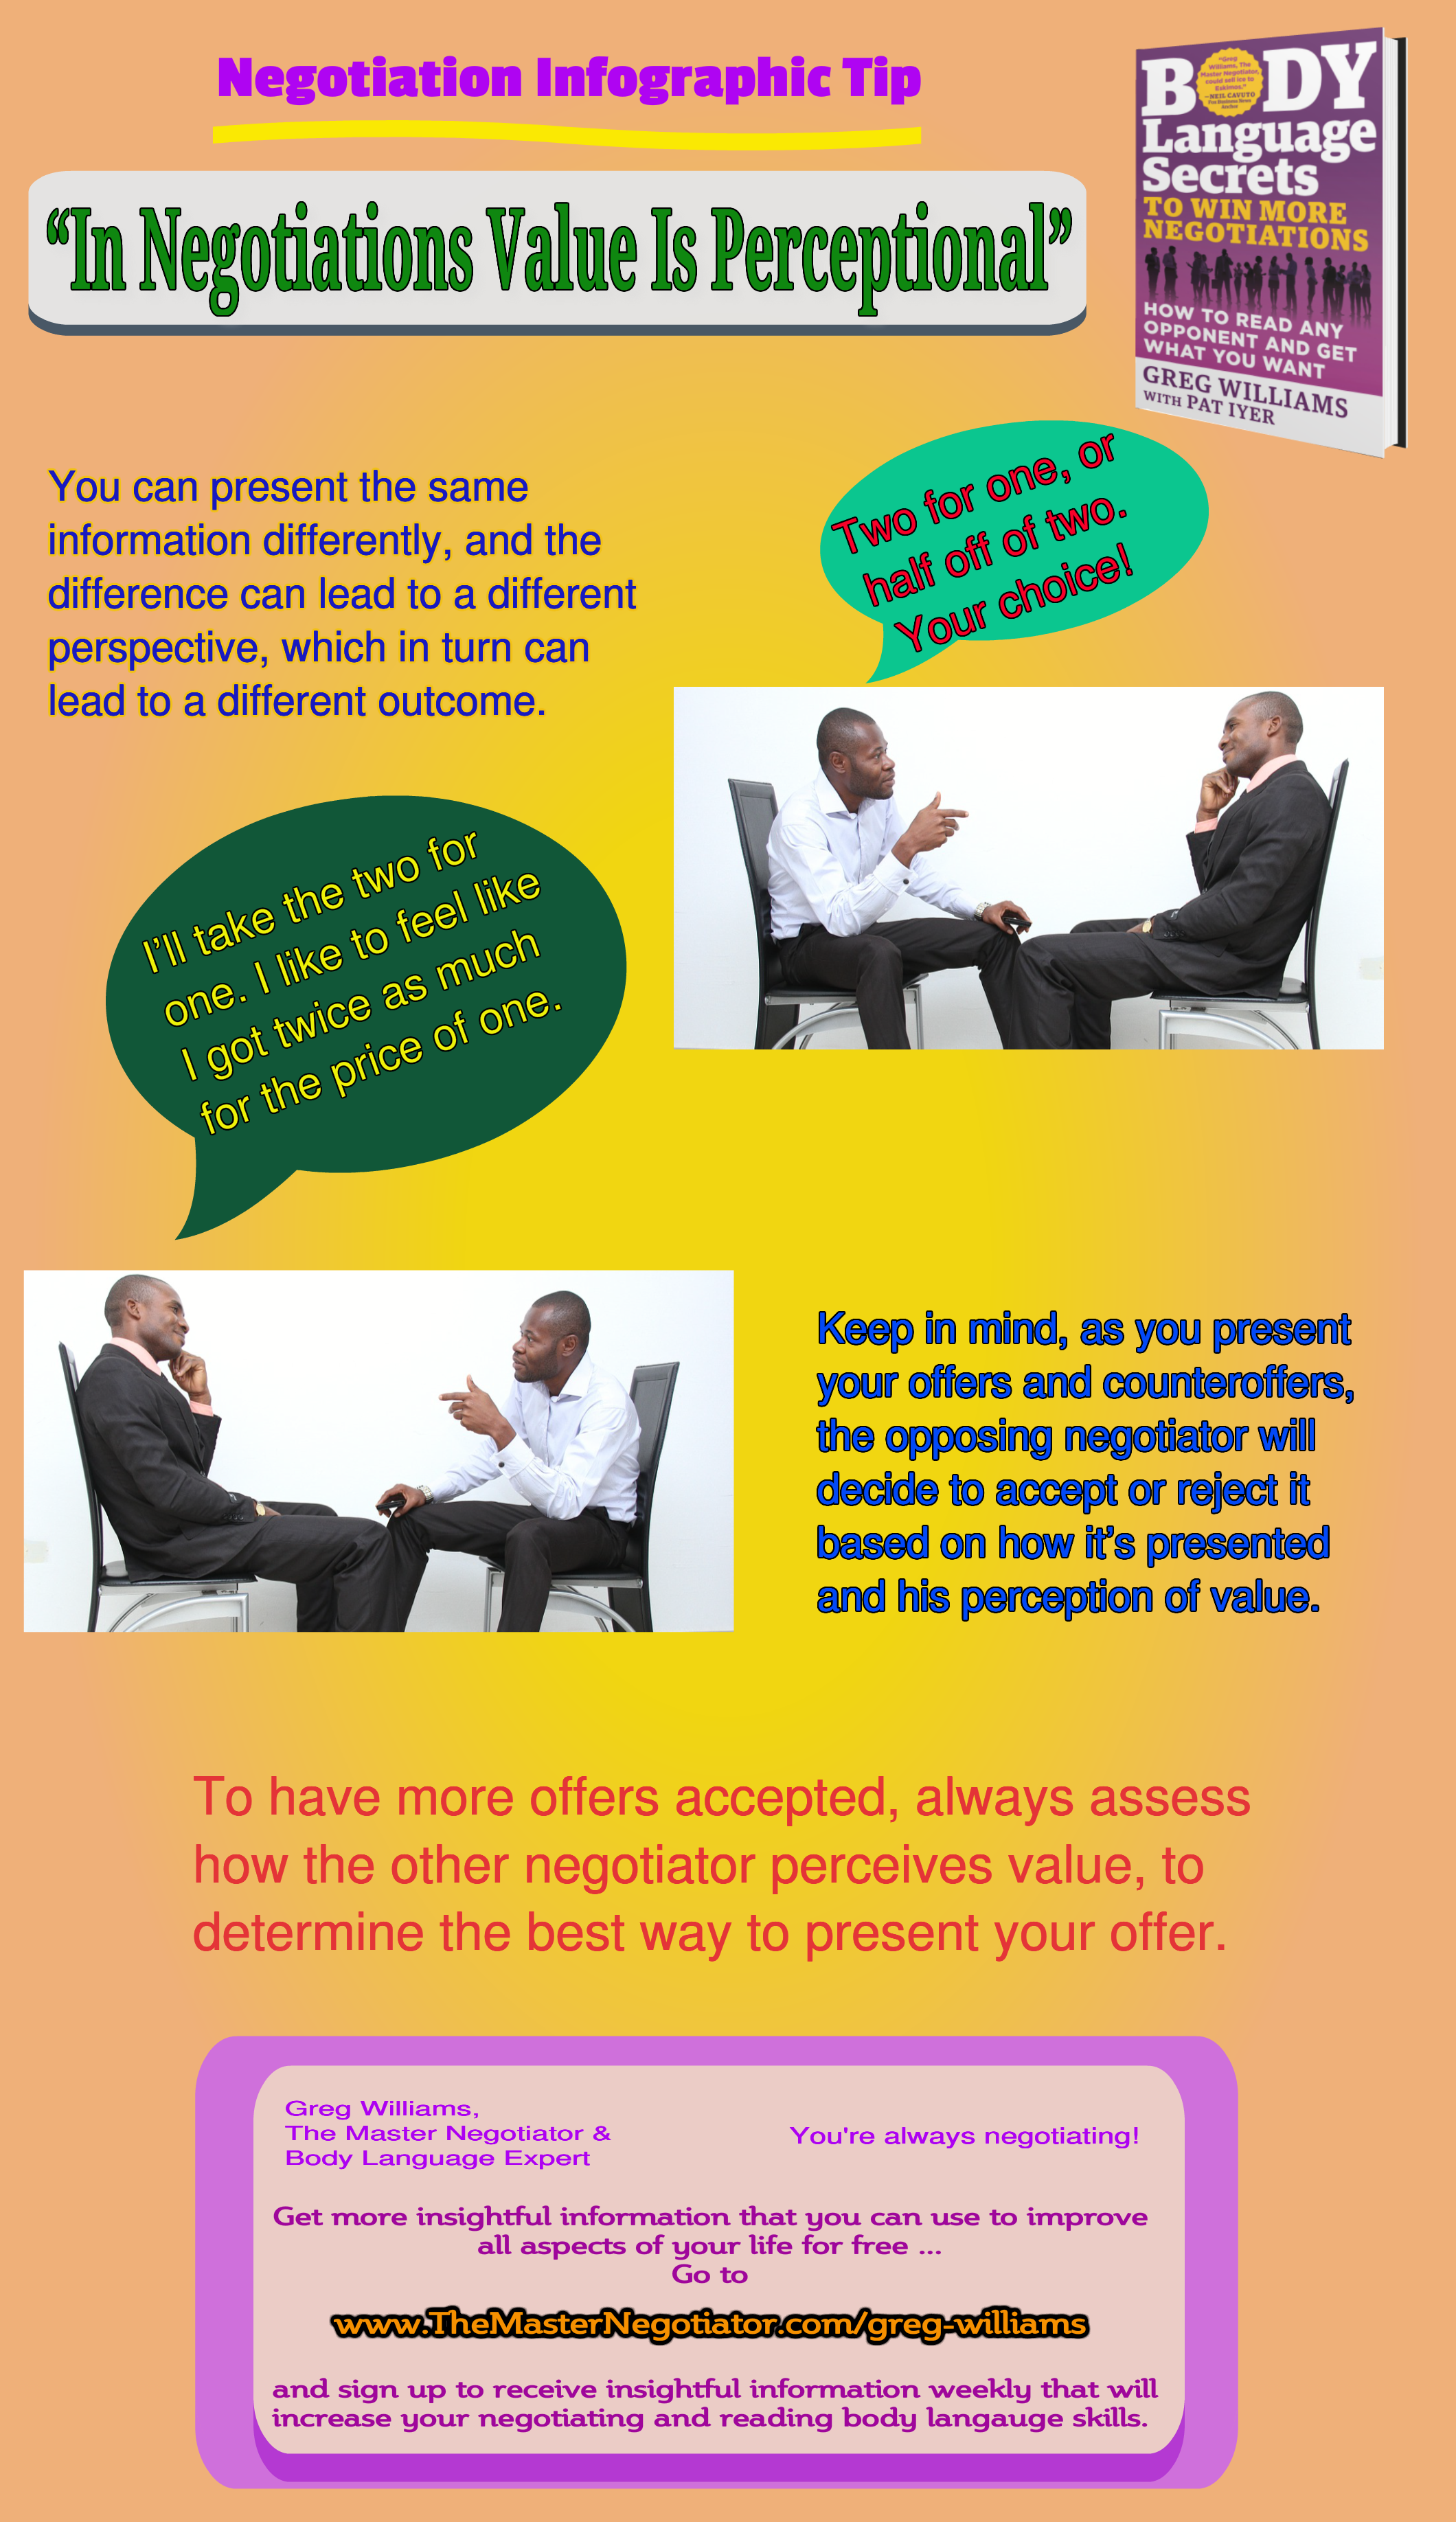 In Negotiations Value is Perceptional